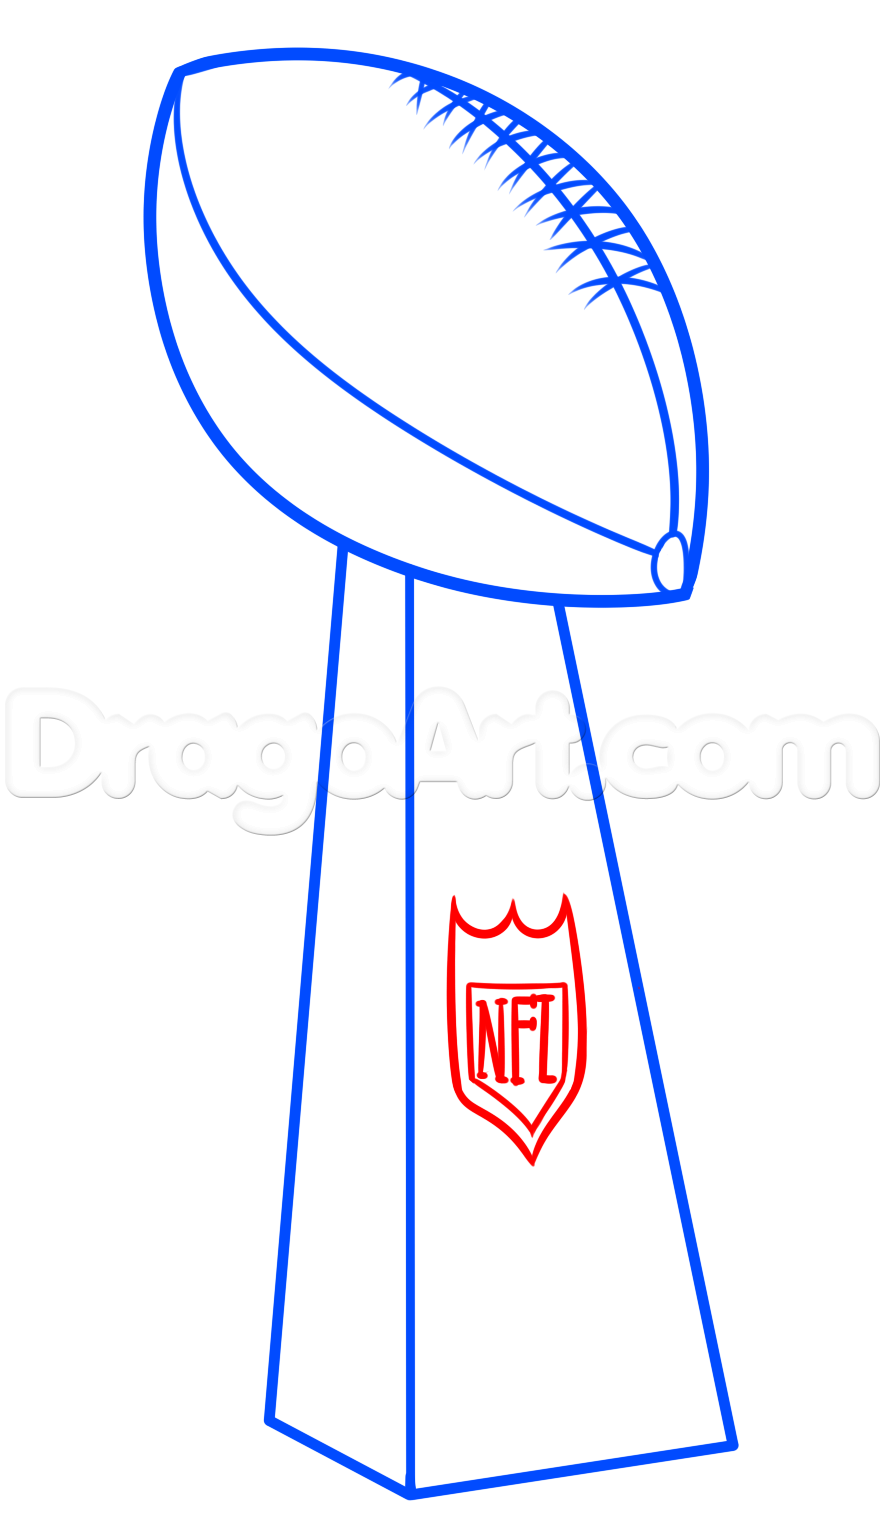 885x1521 Super Bowl Drawing Lesson, Vince Lombardi Trophy, Step